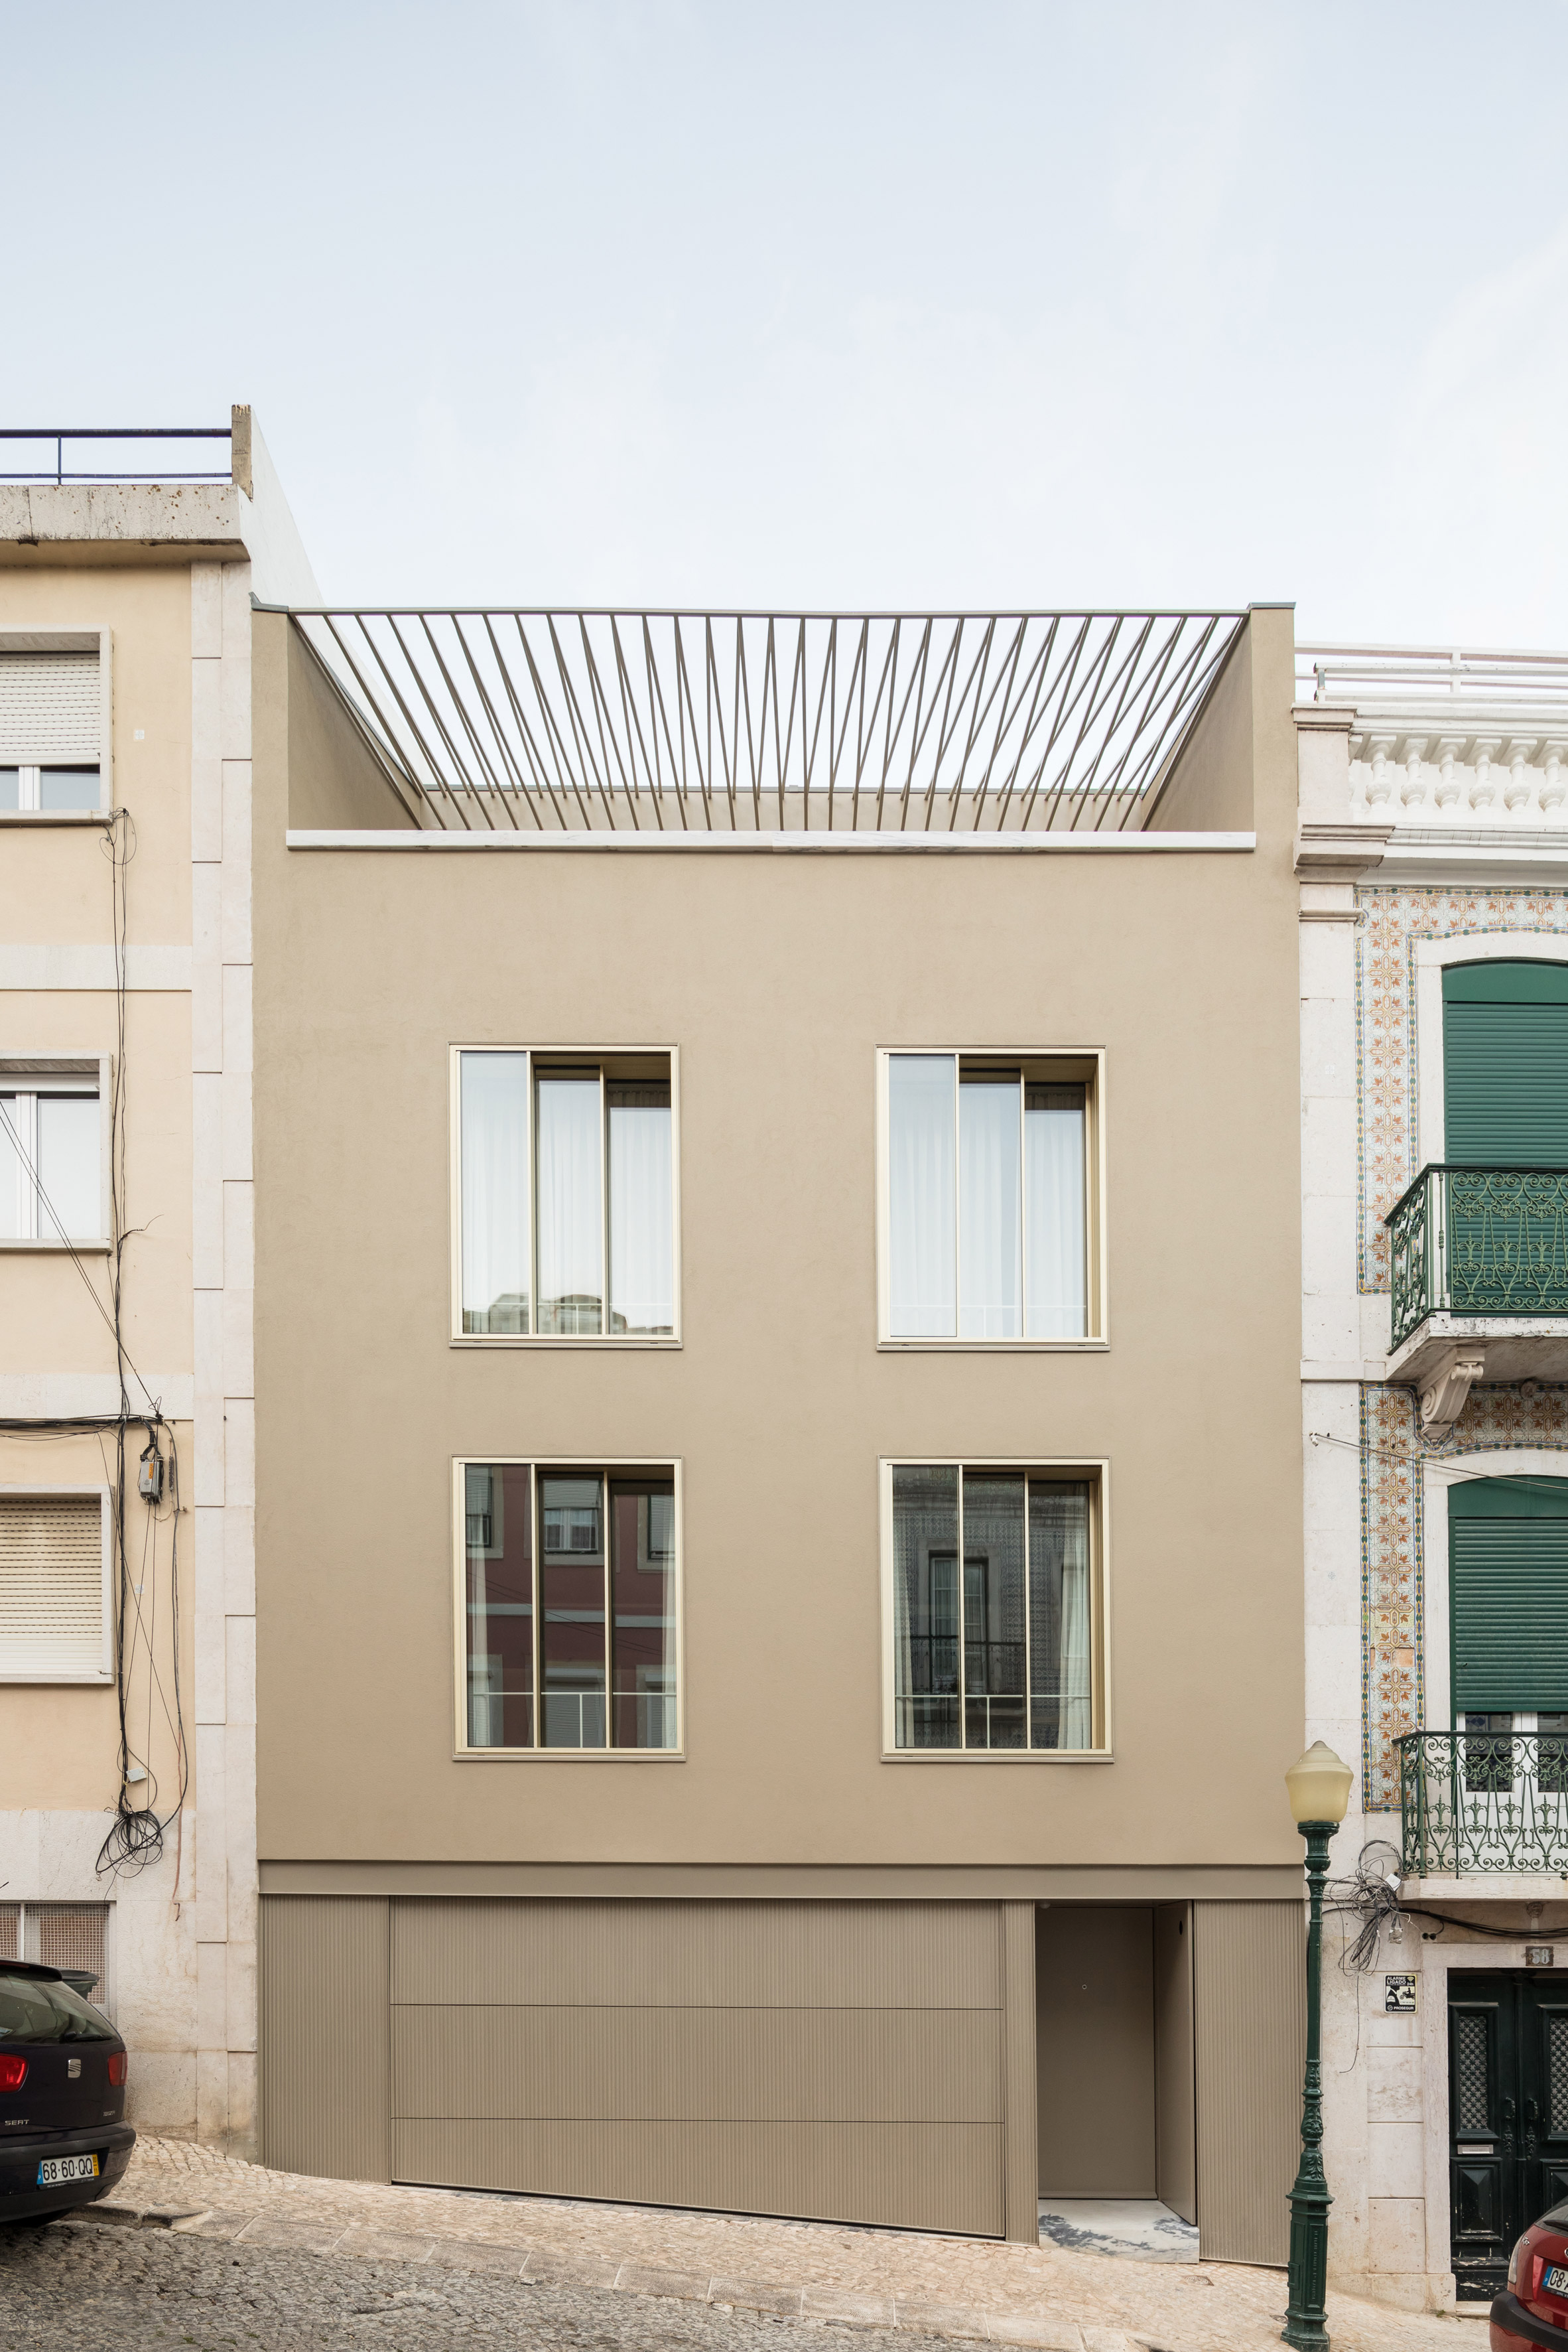 Bak Gordon converts traditional Lisbon house into apartments with private courtyard